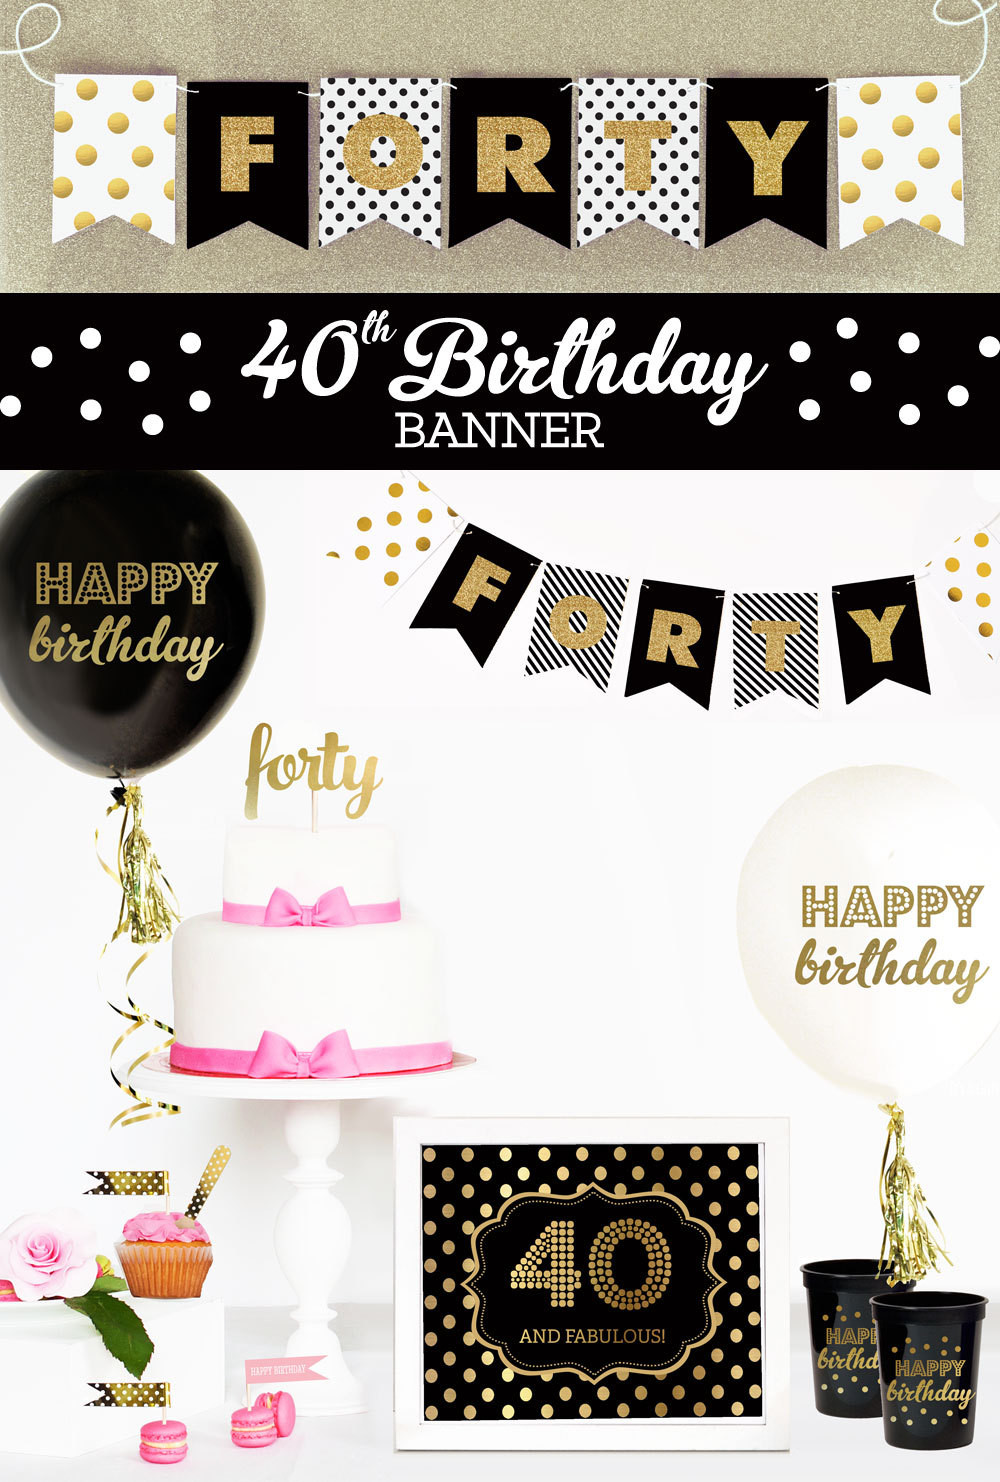 Best ideas about 40 Birthday Decorations . Save or Pin 40th Birthday Banner 40th Birthday Party Decor 40th Now.